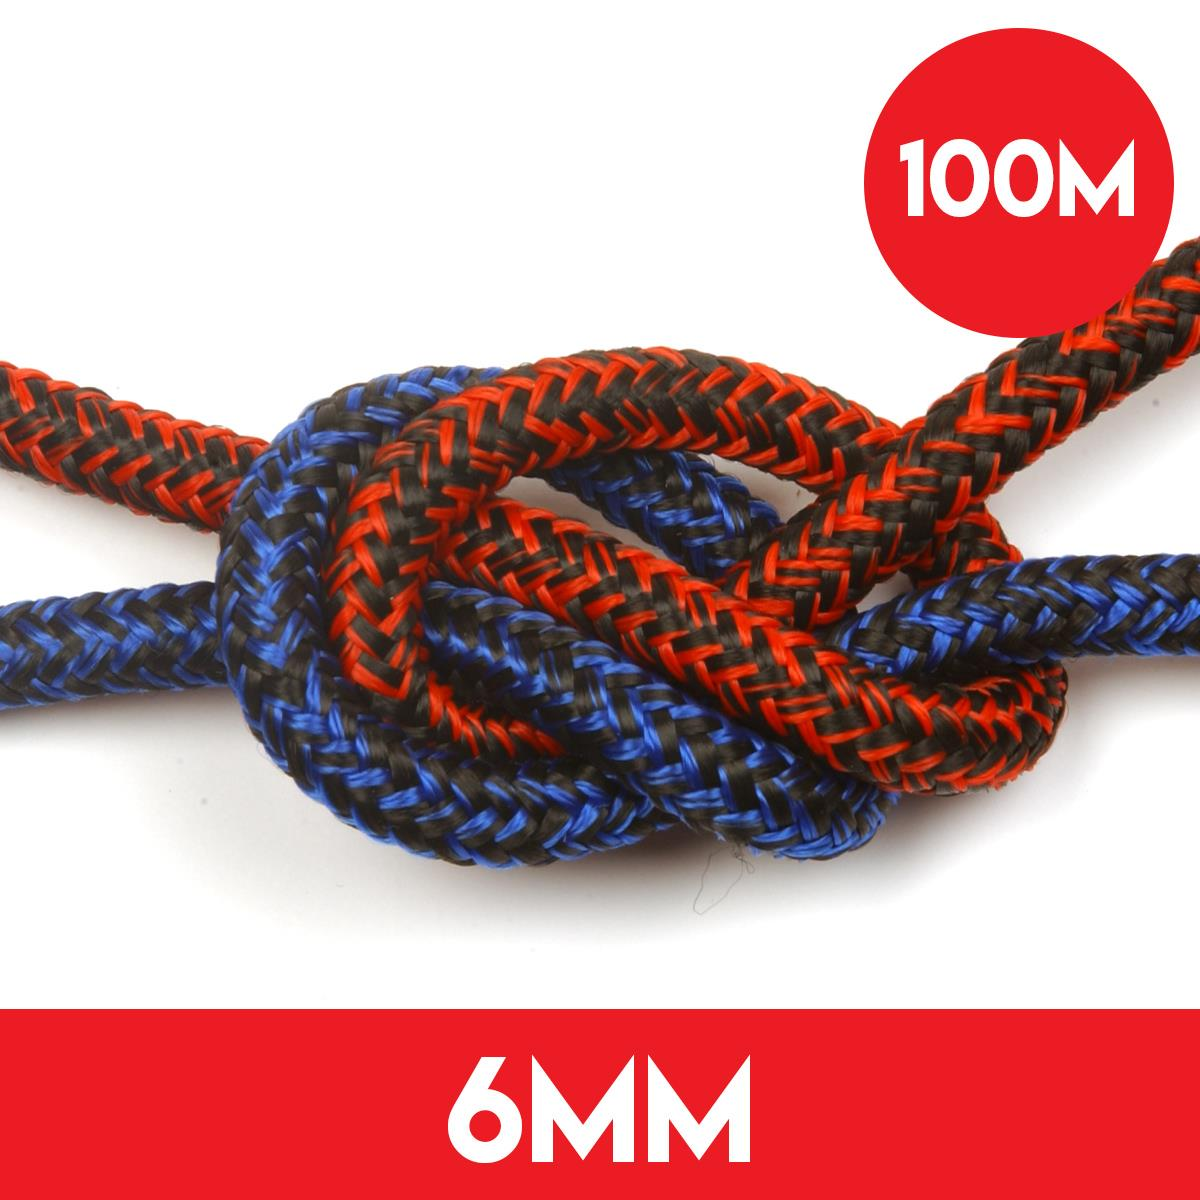 100m of 6mm Kingfisher Evo Sheet Rope